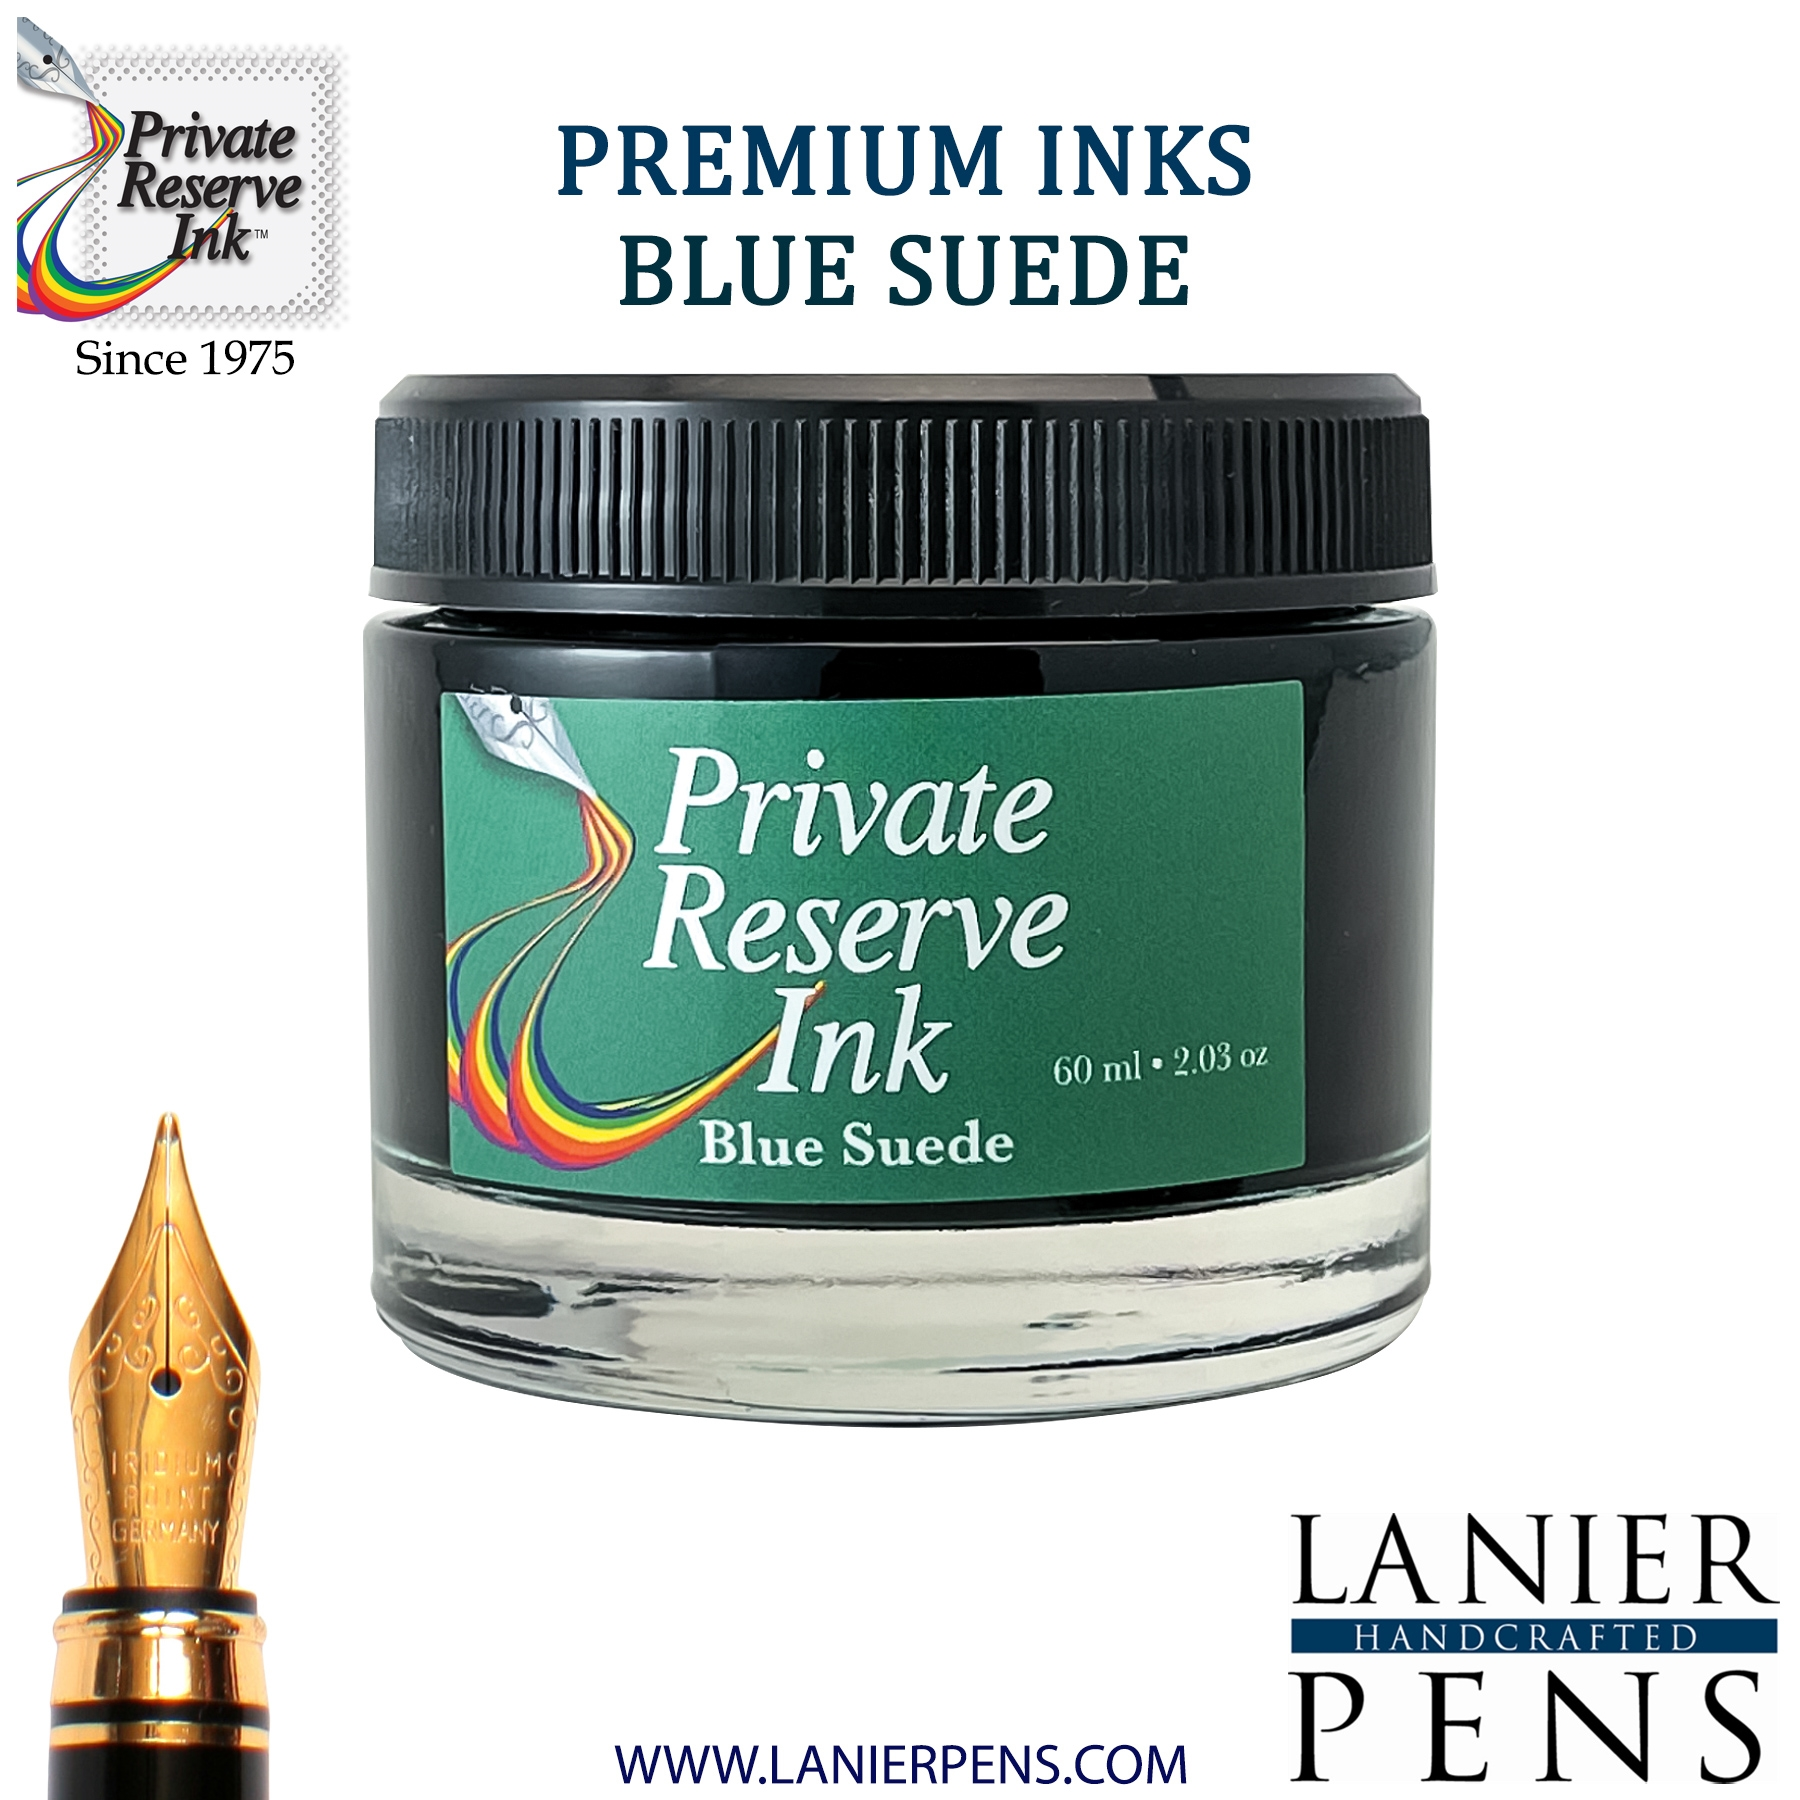 Private Reserve Blue Suede Fountain Pen Ink Bottle 13-bls - Lanier Pens